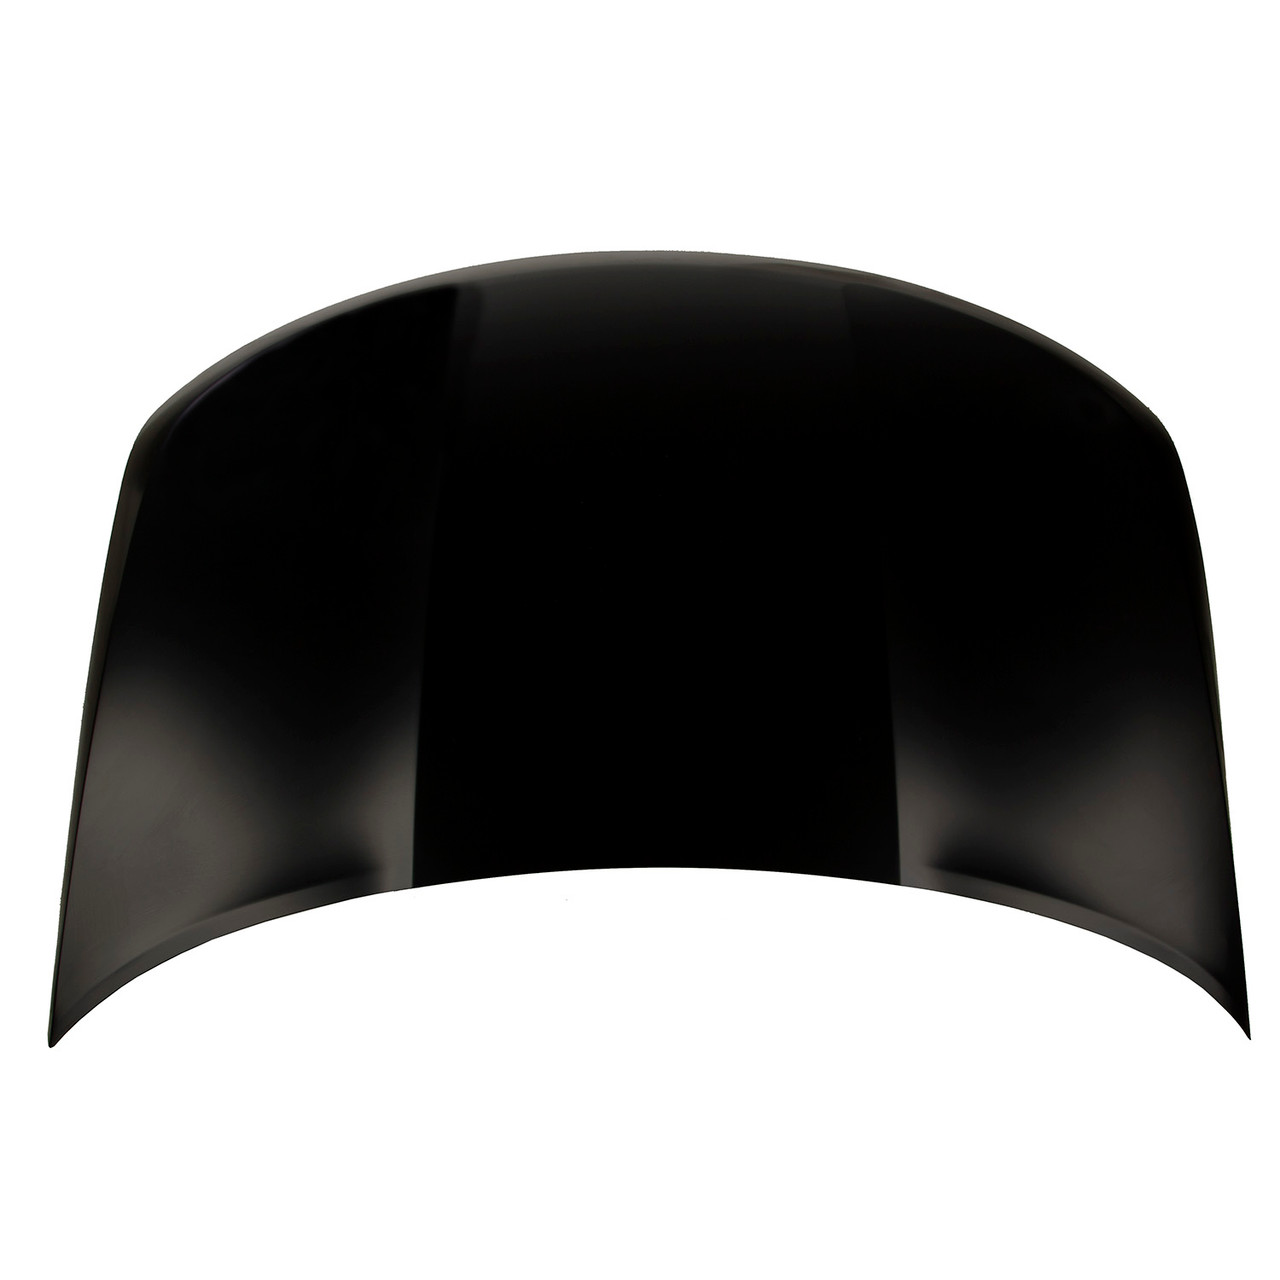 Fender for Jeep Compass 11-17 Left Steel Mk